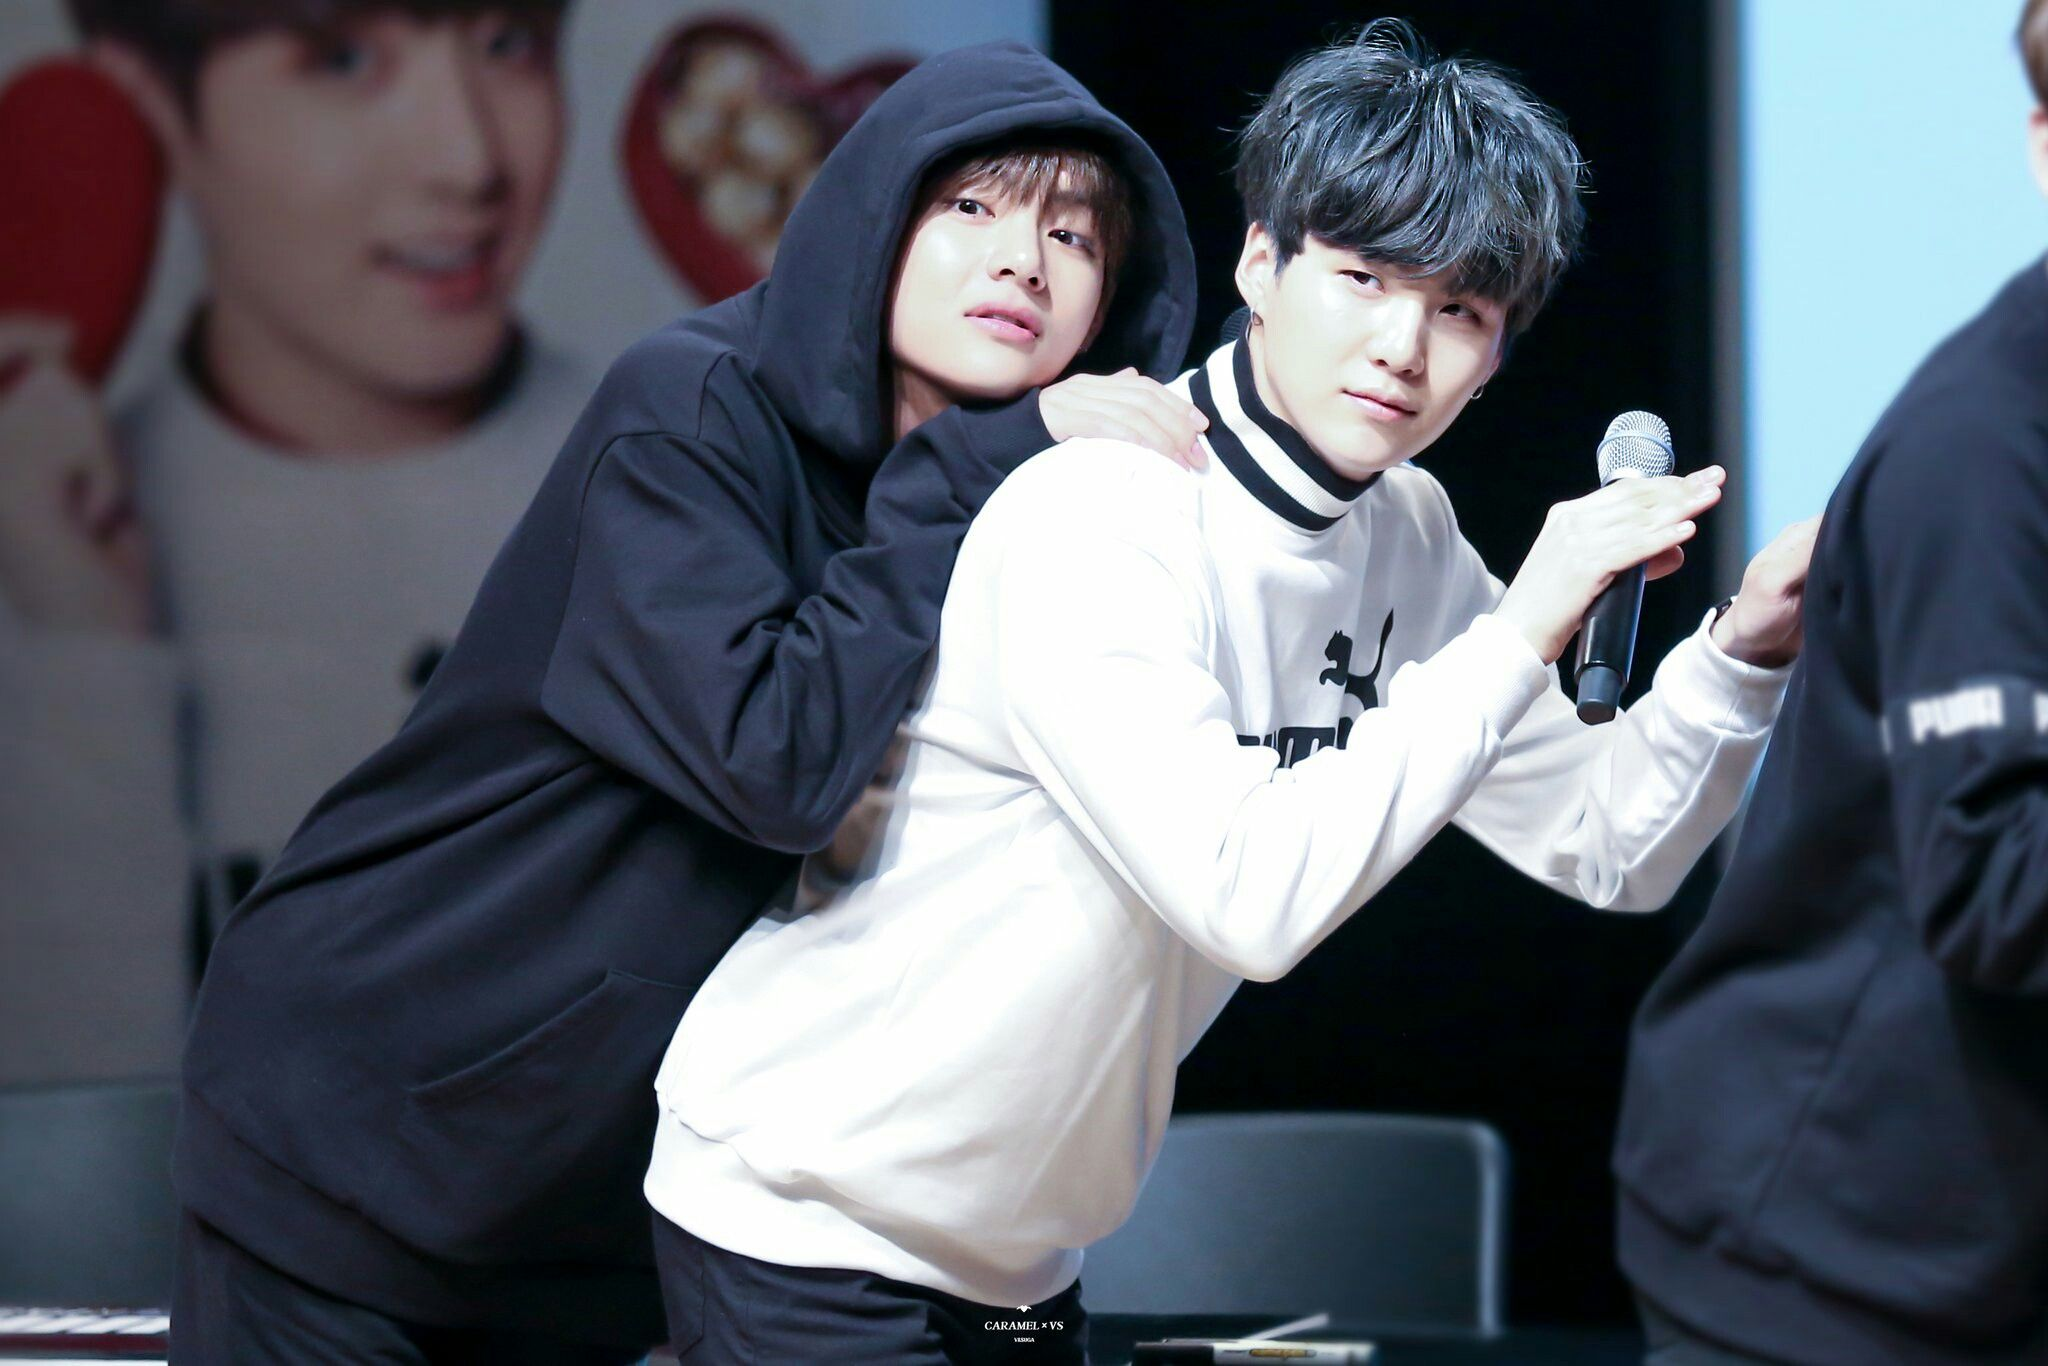 V and Suga~ Taëgi~ ❤ BTS PUMA Fansign (170304 my heart is hurting) #BTS #방탄소년단